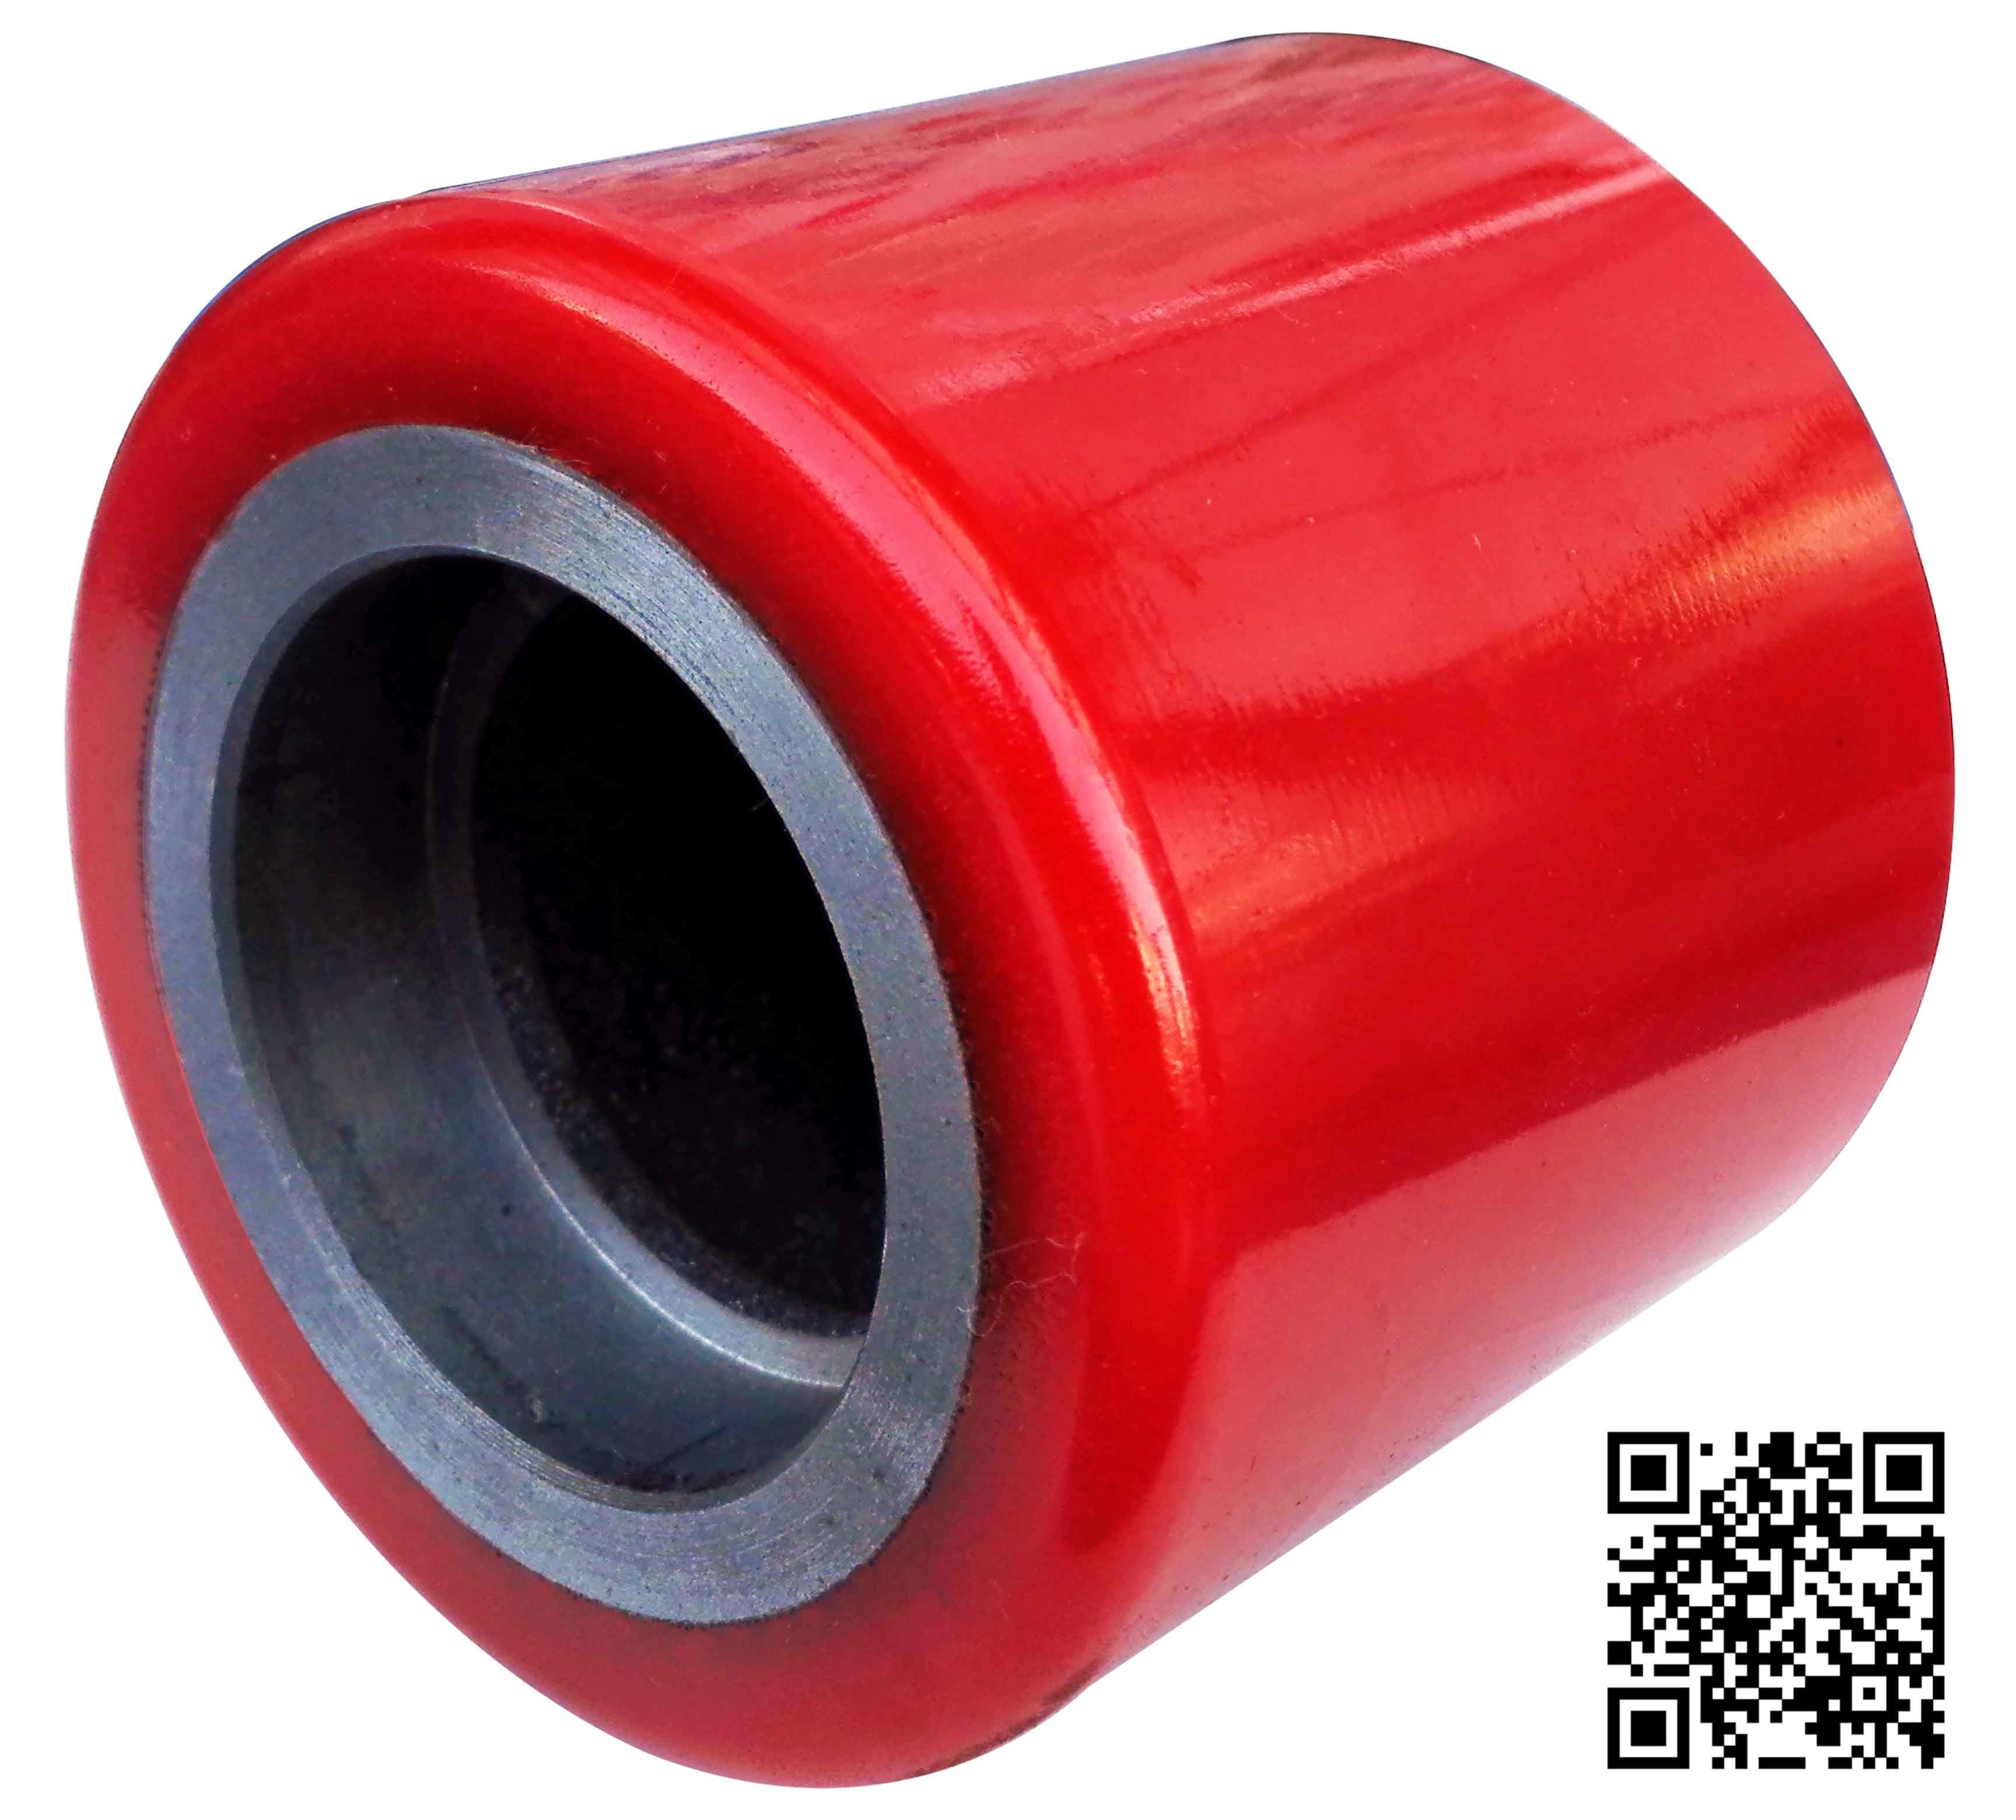 100mm Red PU Forklift Caster Wheel for Warehouse